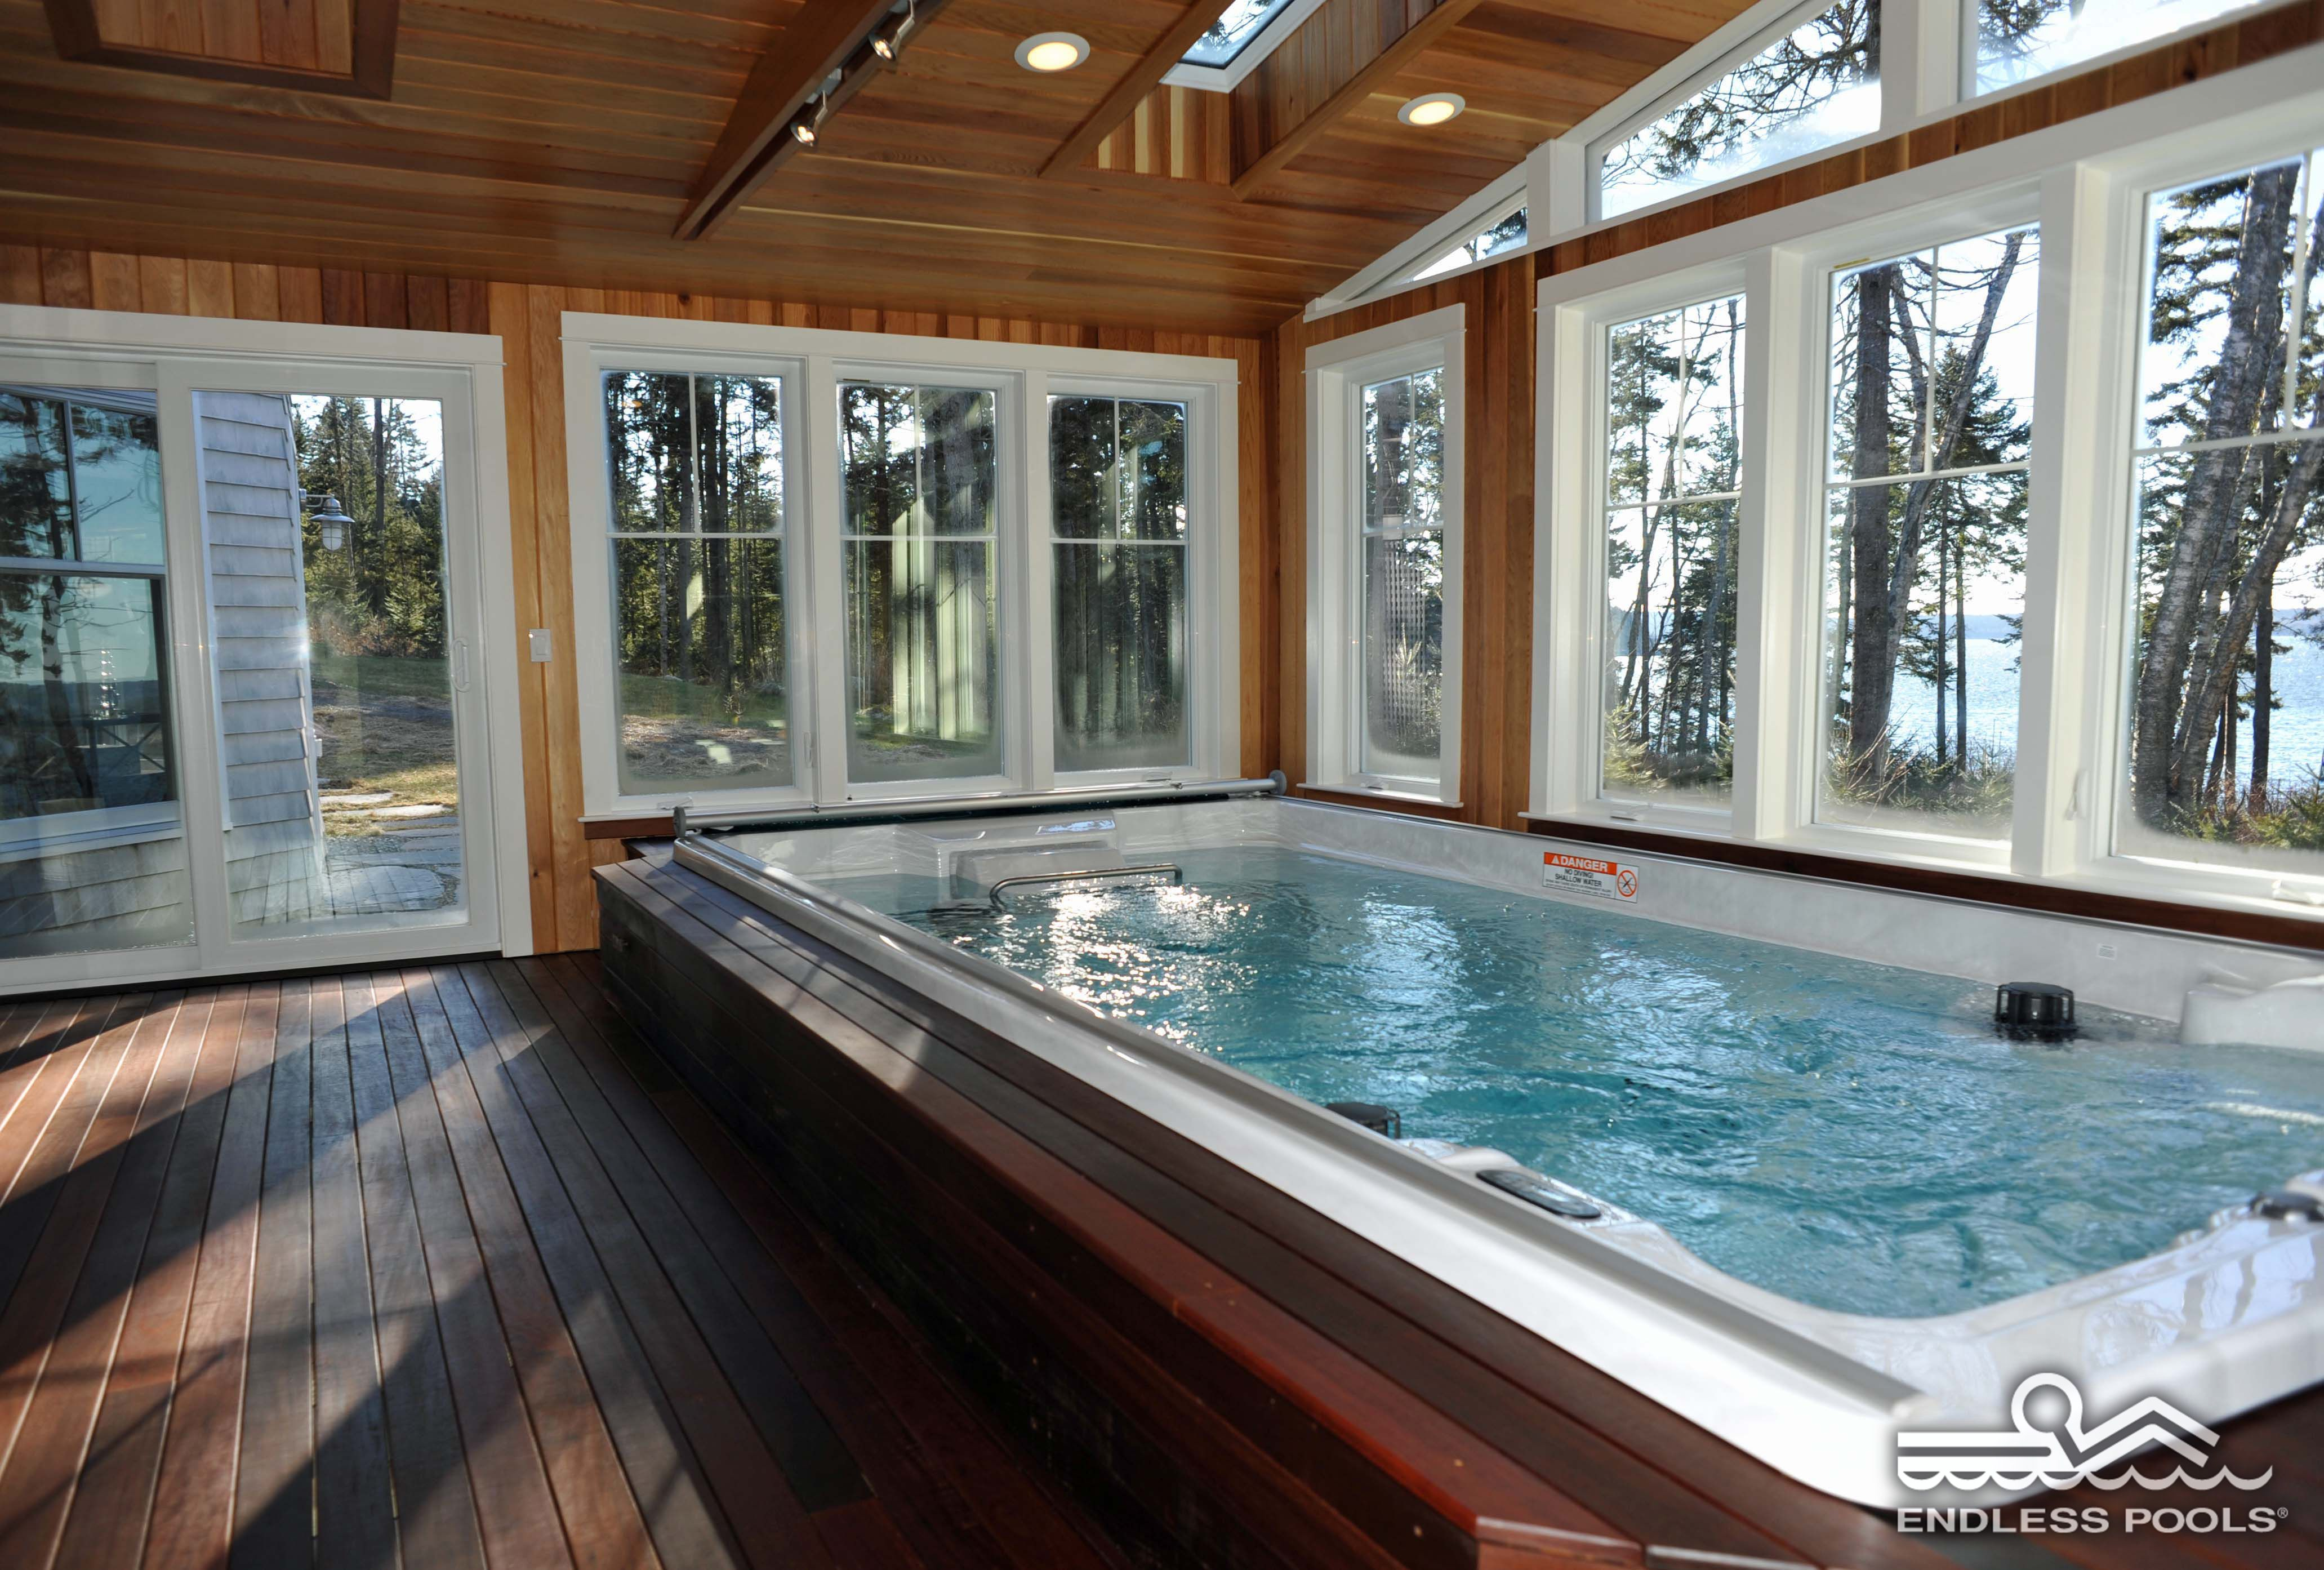 Jacuzzi Endless Pool The Sunroom Swim Spa A Beautiful Escape For Exercise And